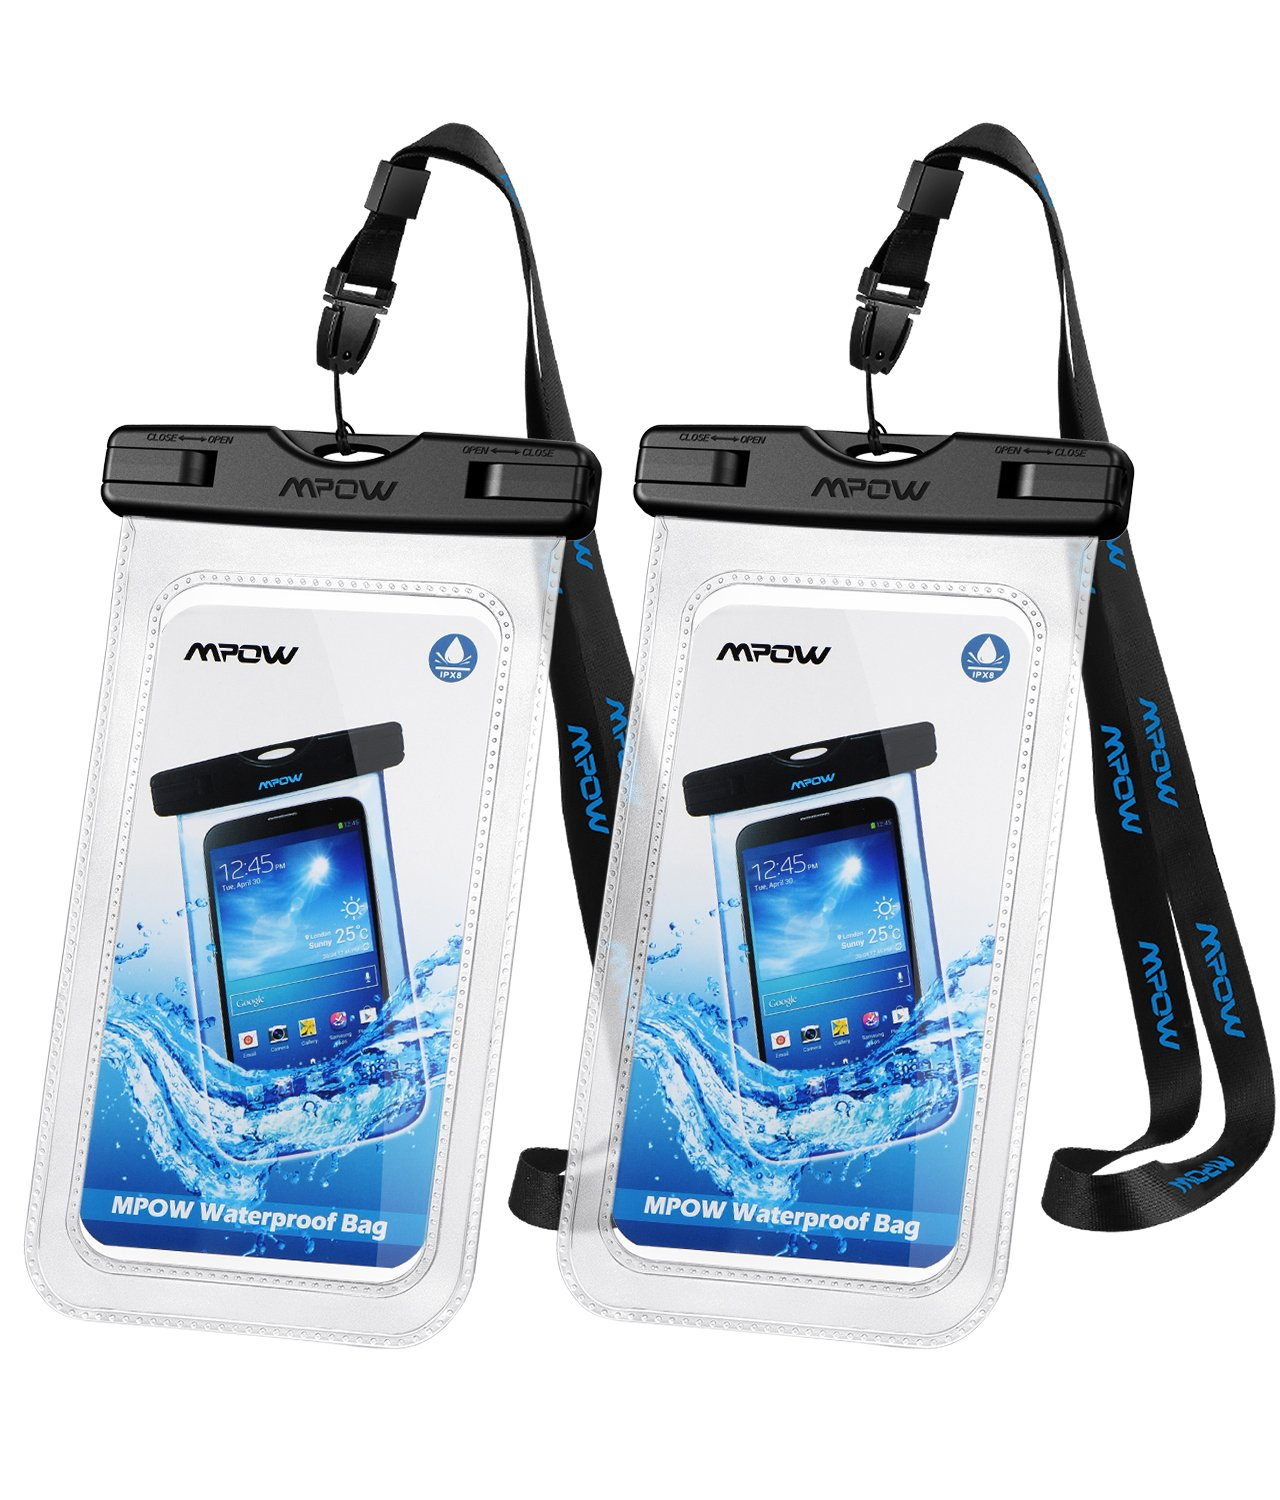 Mpow Universal Waterproof Case,IPX8 Waterproof Phone Pouch Underwater Dry  Bag Compatible with iPhone Xs/XS Max/XR/X/8/8 Plus/7/7 Plus, Galaxy